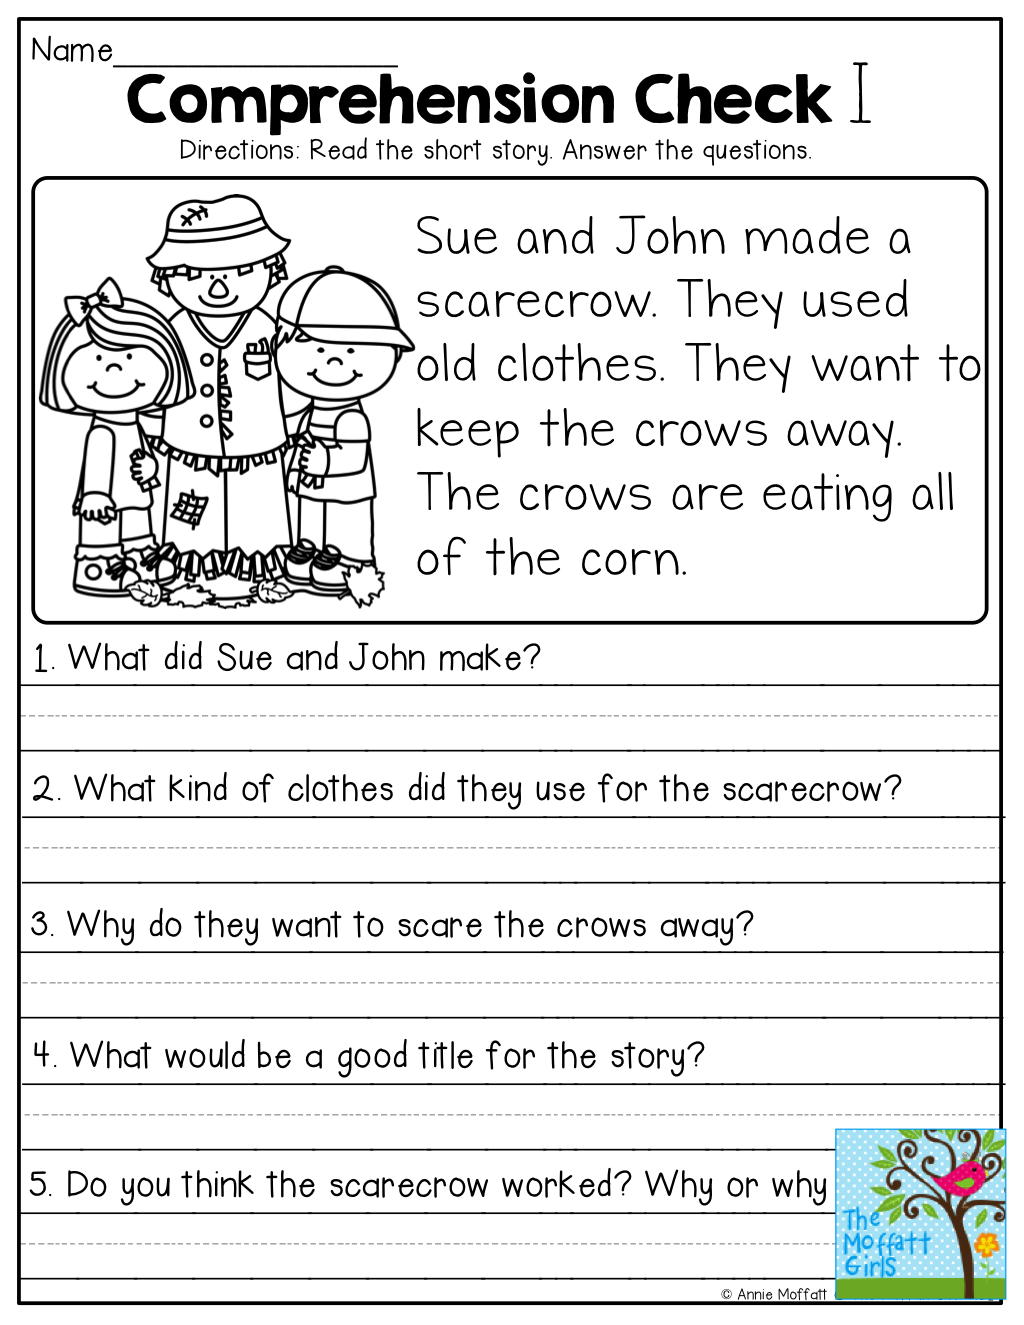 Worksheets Reading Comprehension Worksheets First Grade short stories with comprehension questions jassiah pinterest activities reading worksheetssummer